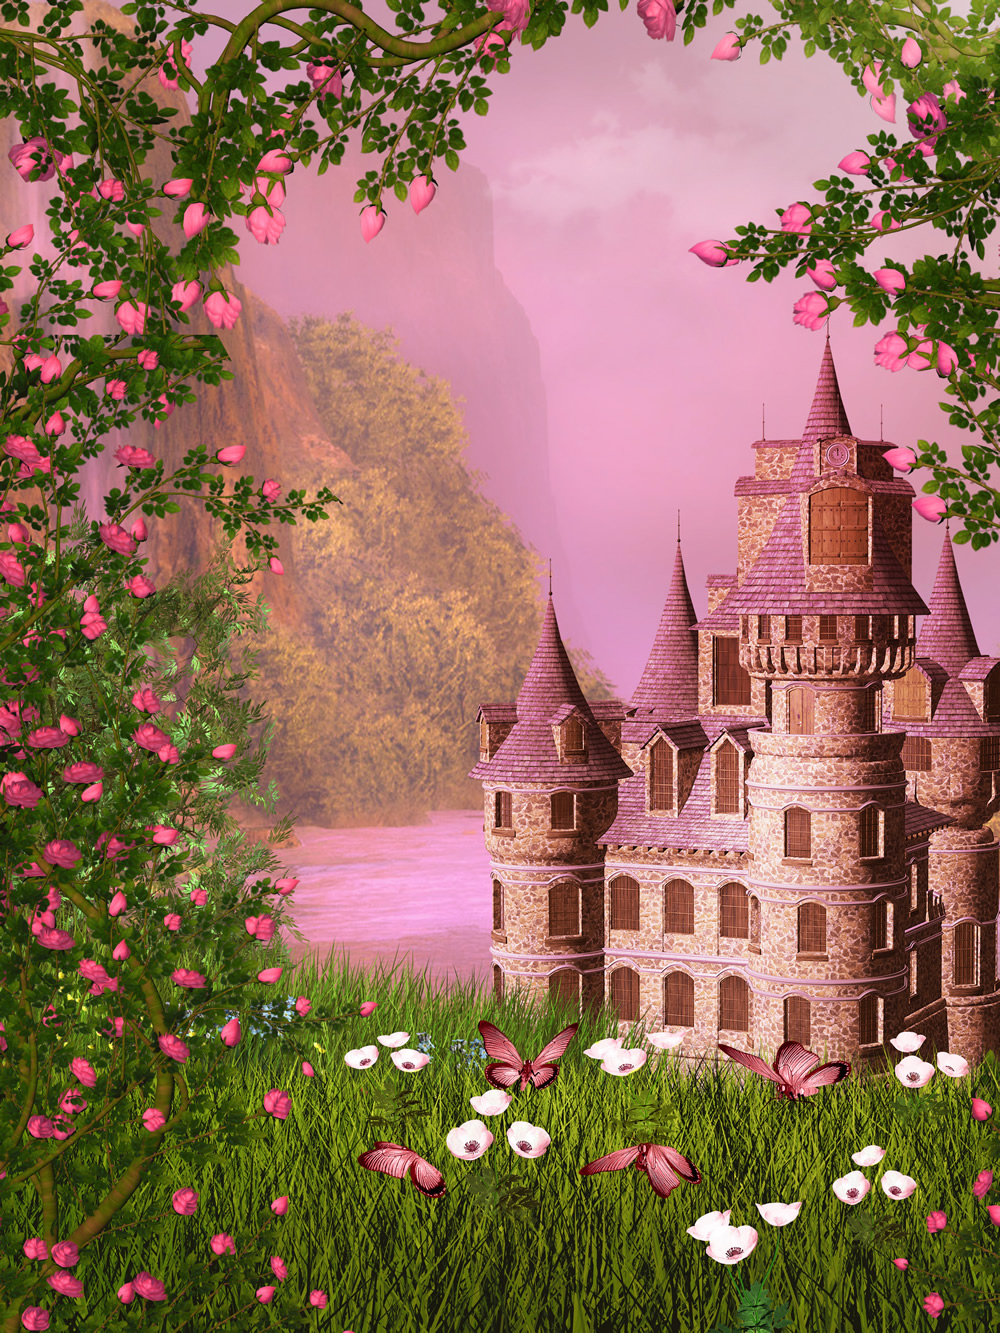 LIFE MAGIC BOX Vinyl Fairy Tale Castle Cool Backgrounds Background for Photos Party Backdrops Pink Wallpaper Backdrop Party цена и фото